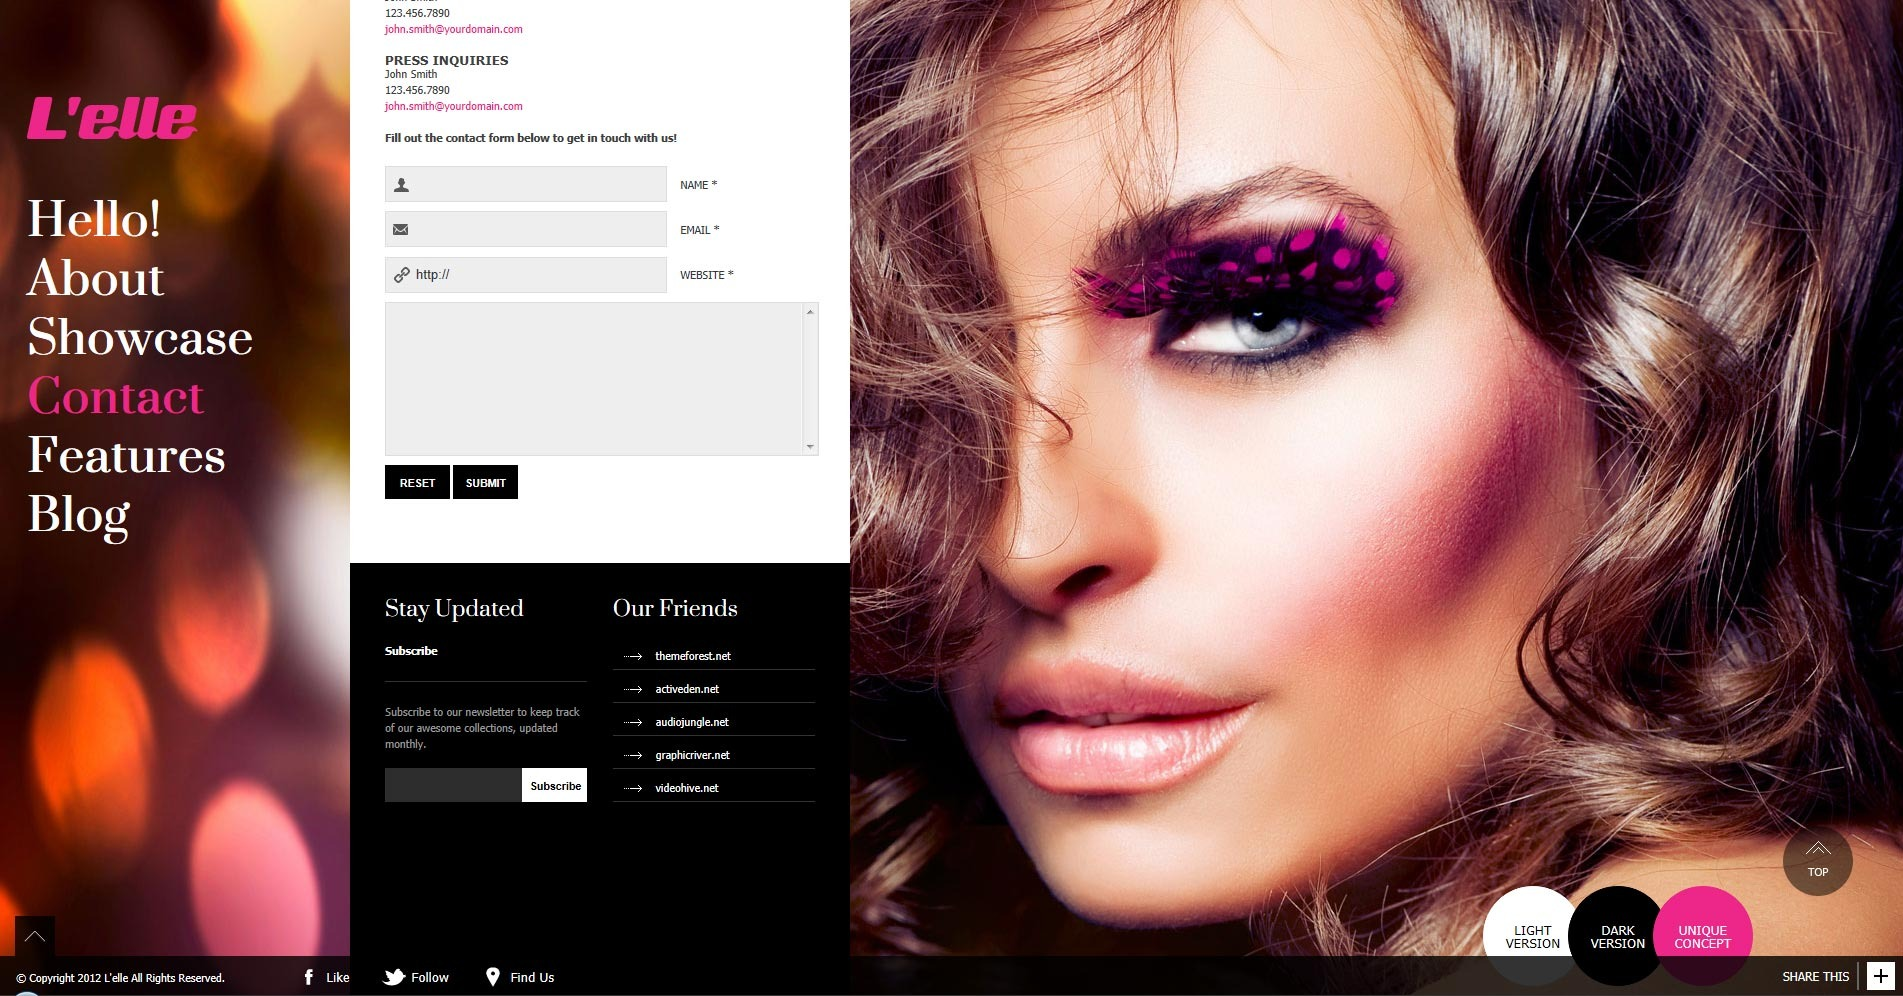 L'elle Creative Agency Showcase - newsletter subscribe form + external links overall view